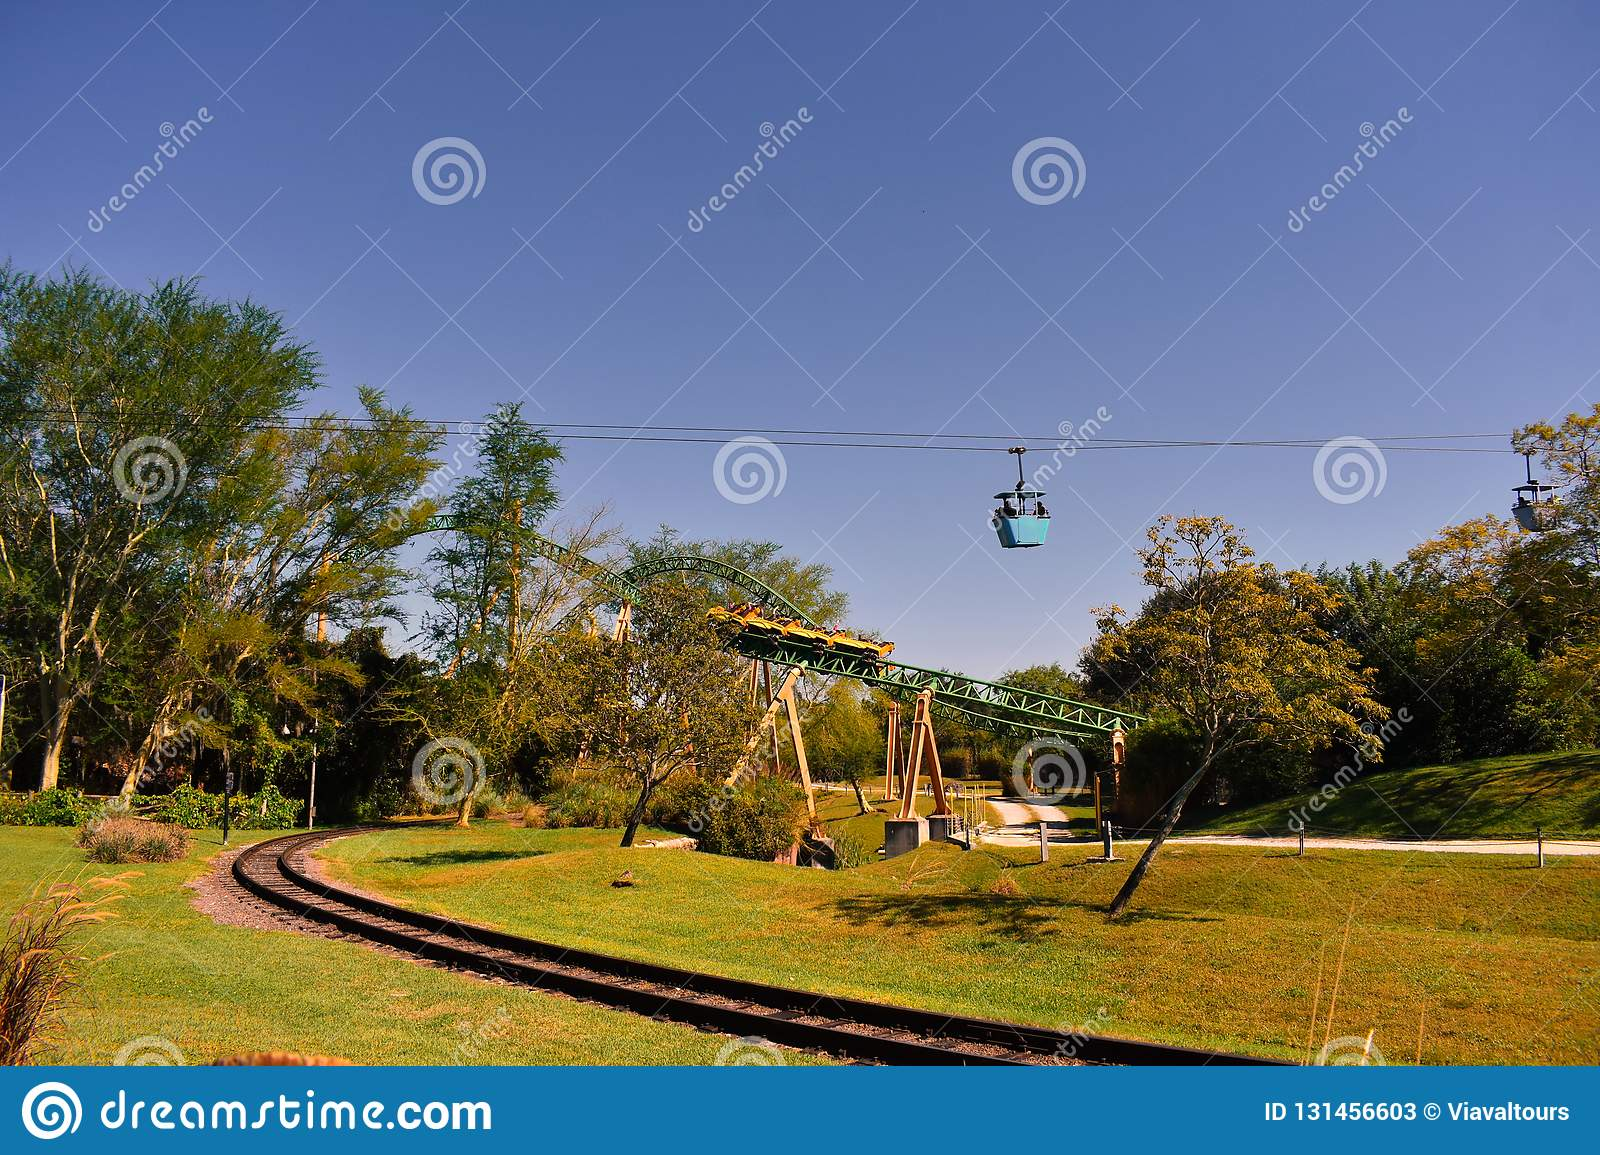 Tampa, Florida; September 29, 2018. Skyride attraction, rail and Cheetah Hunt Rollercoaster at